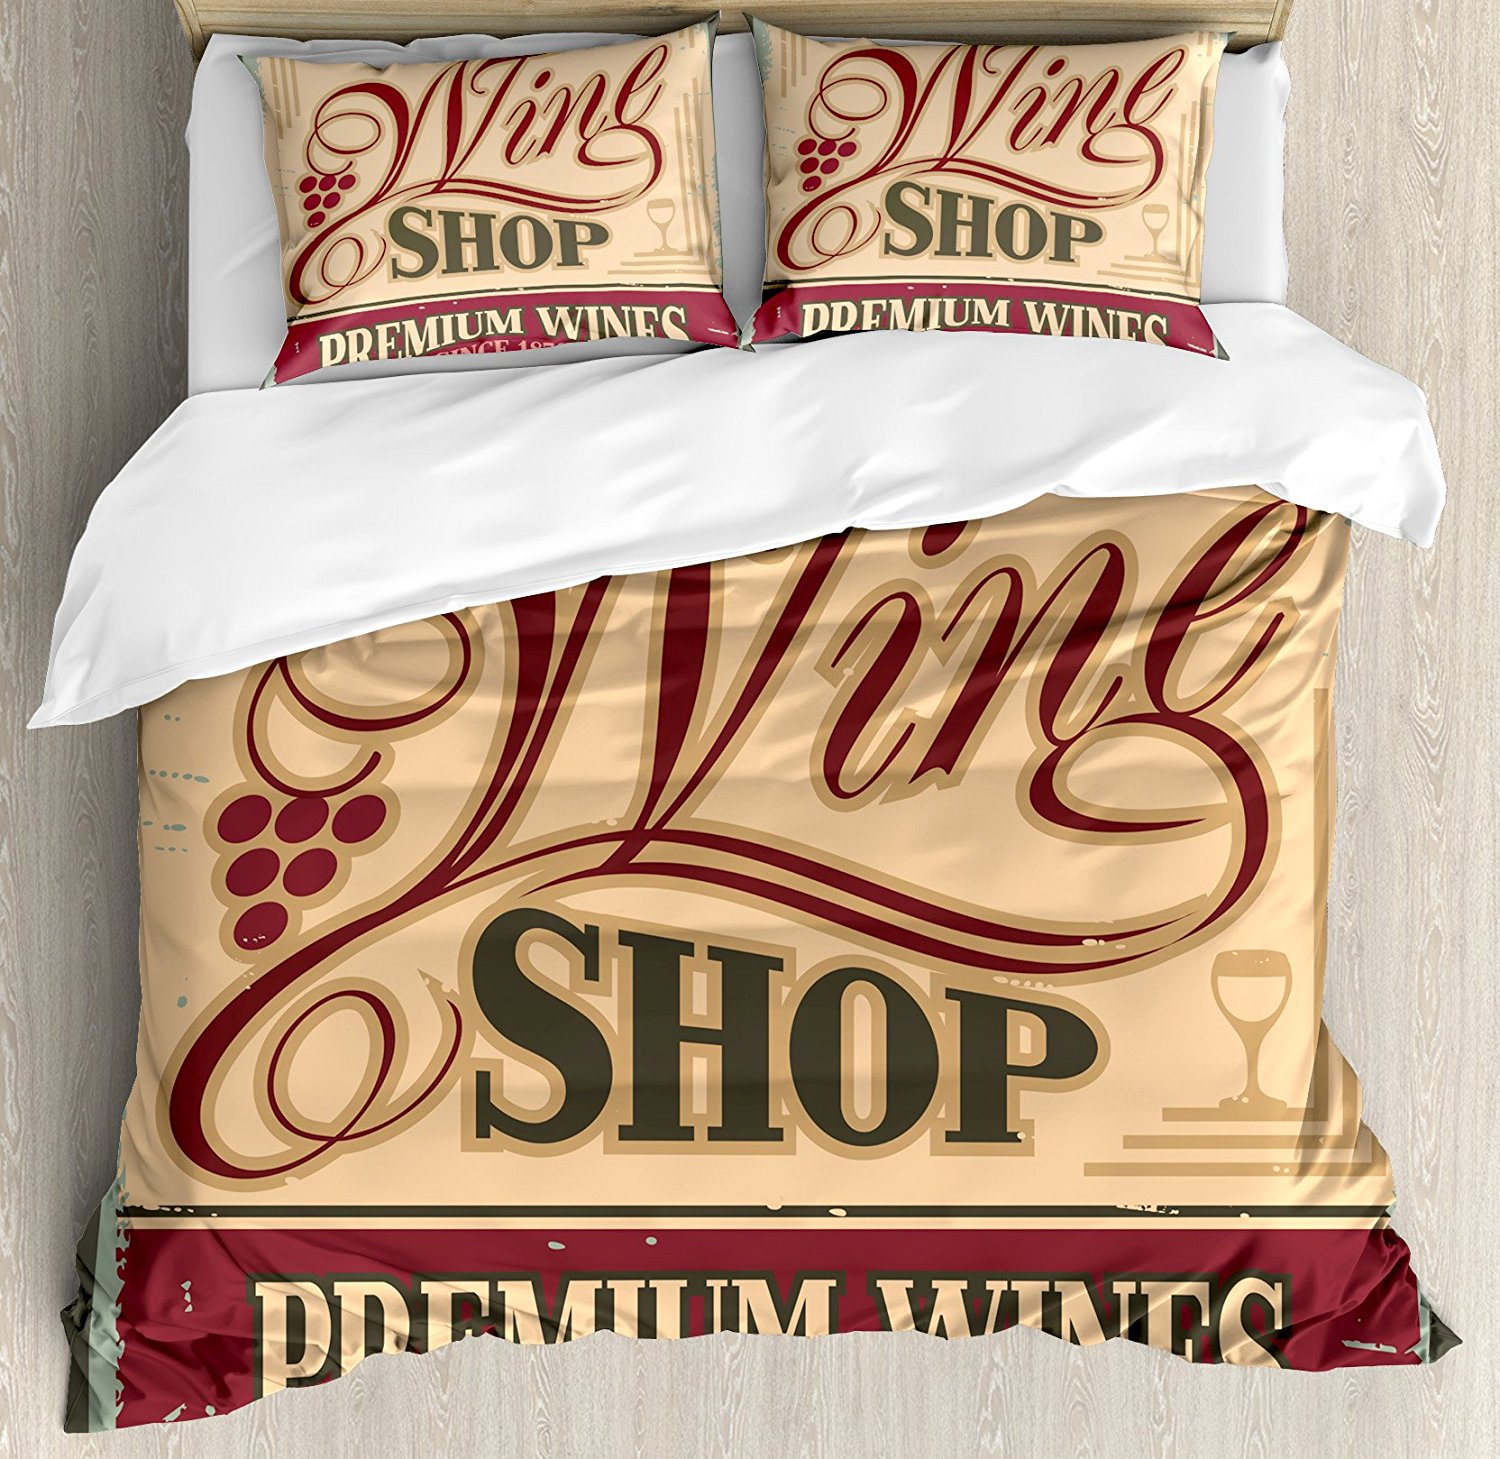 Vintage Duvet Cover Set, Vintage Rusty Metal Pop Art Style Sign for Wine Shop Past Time Adds Bohemian Decor, 4 Piece Bedding Set